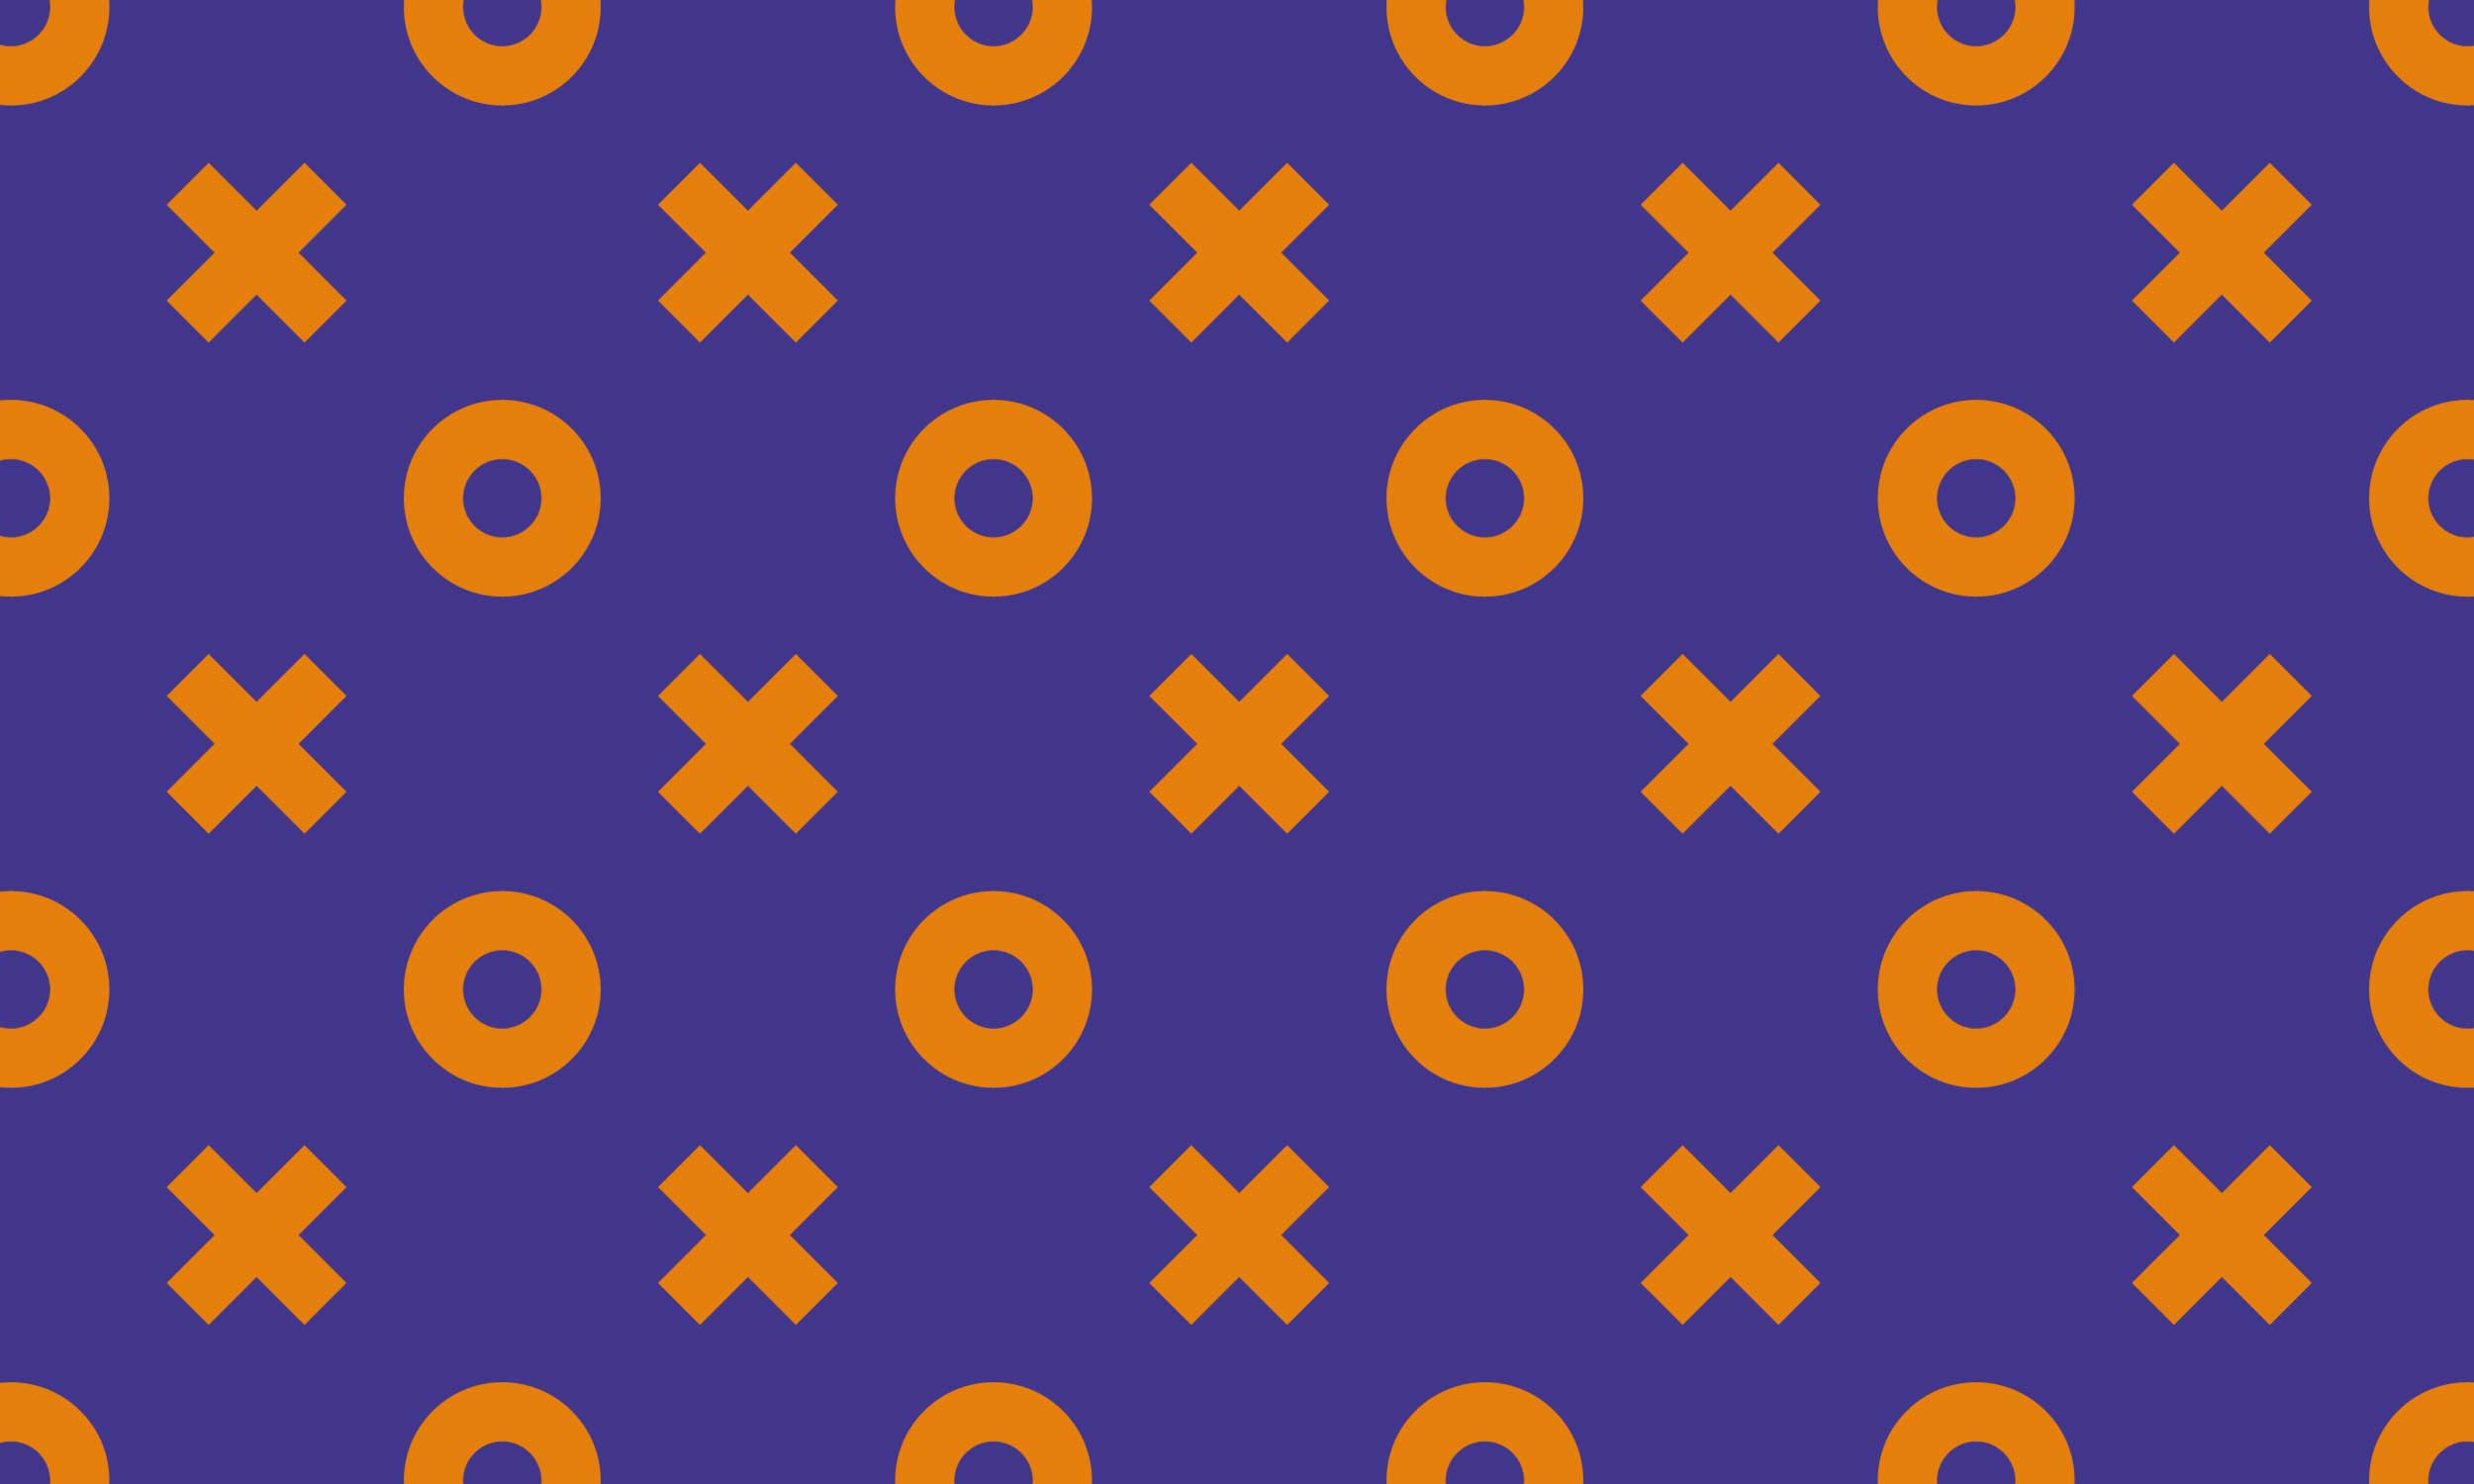 Naughts and crosses pattern